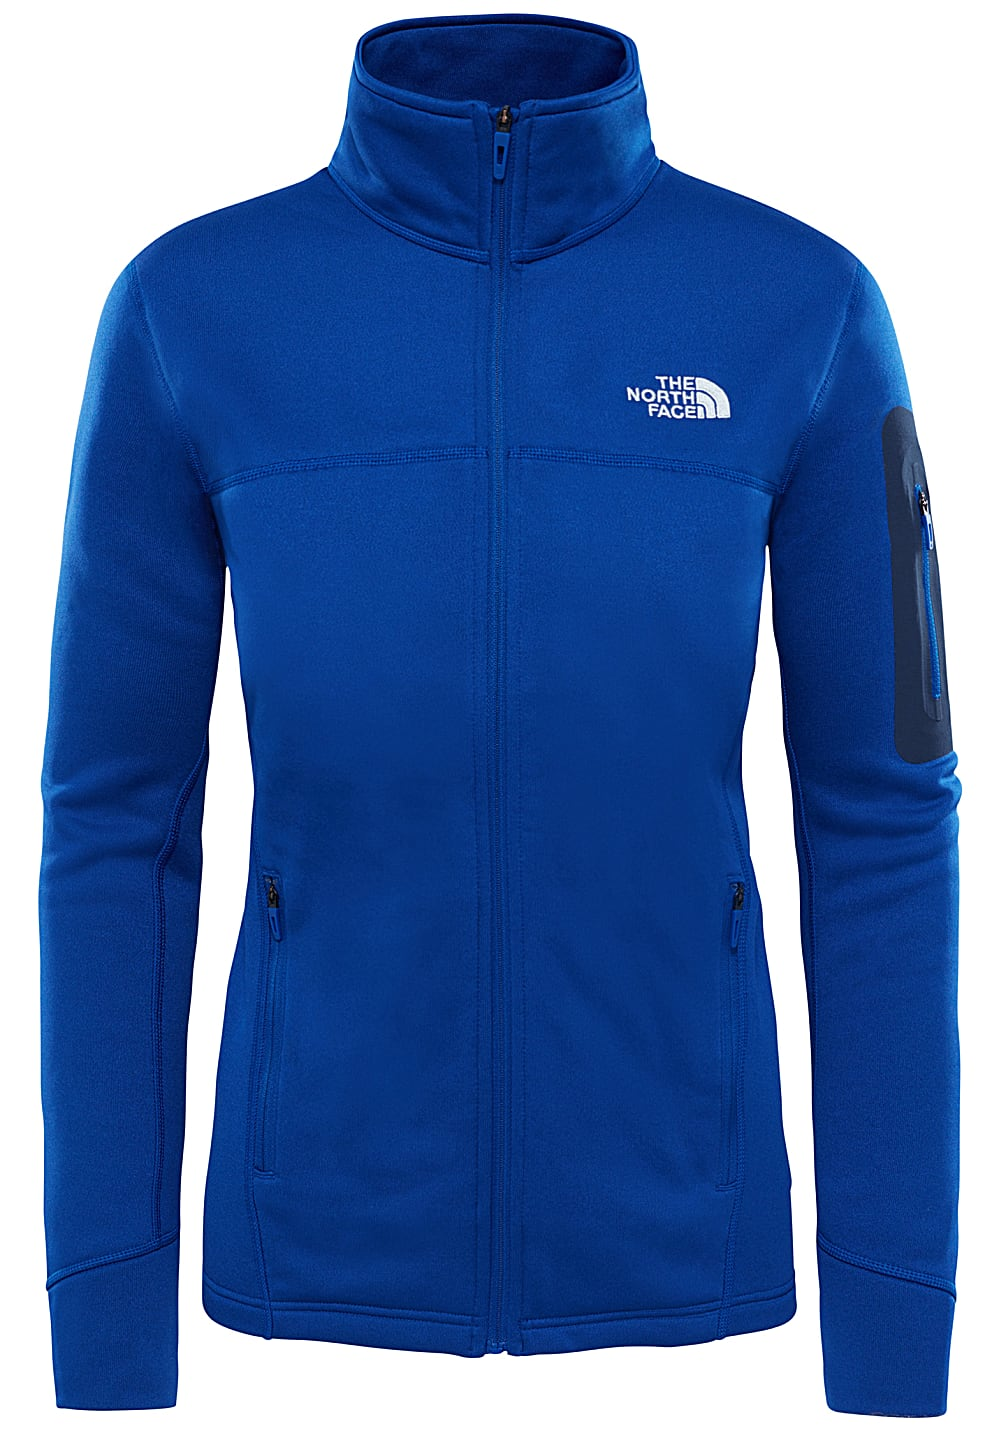 39ebb6f41 THE NORTH FACE Kyoshi - Fleece Jacket for Women - Blue